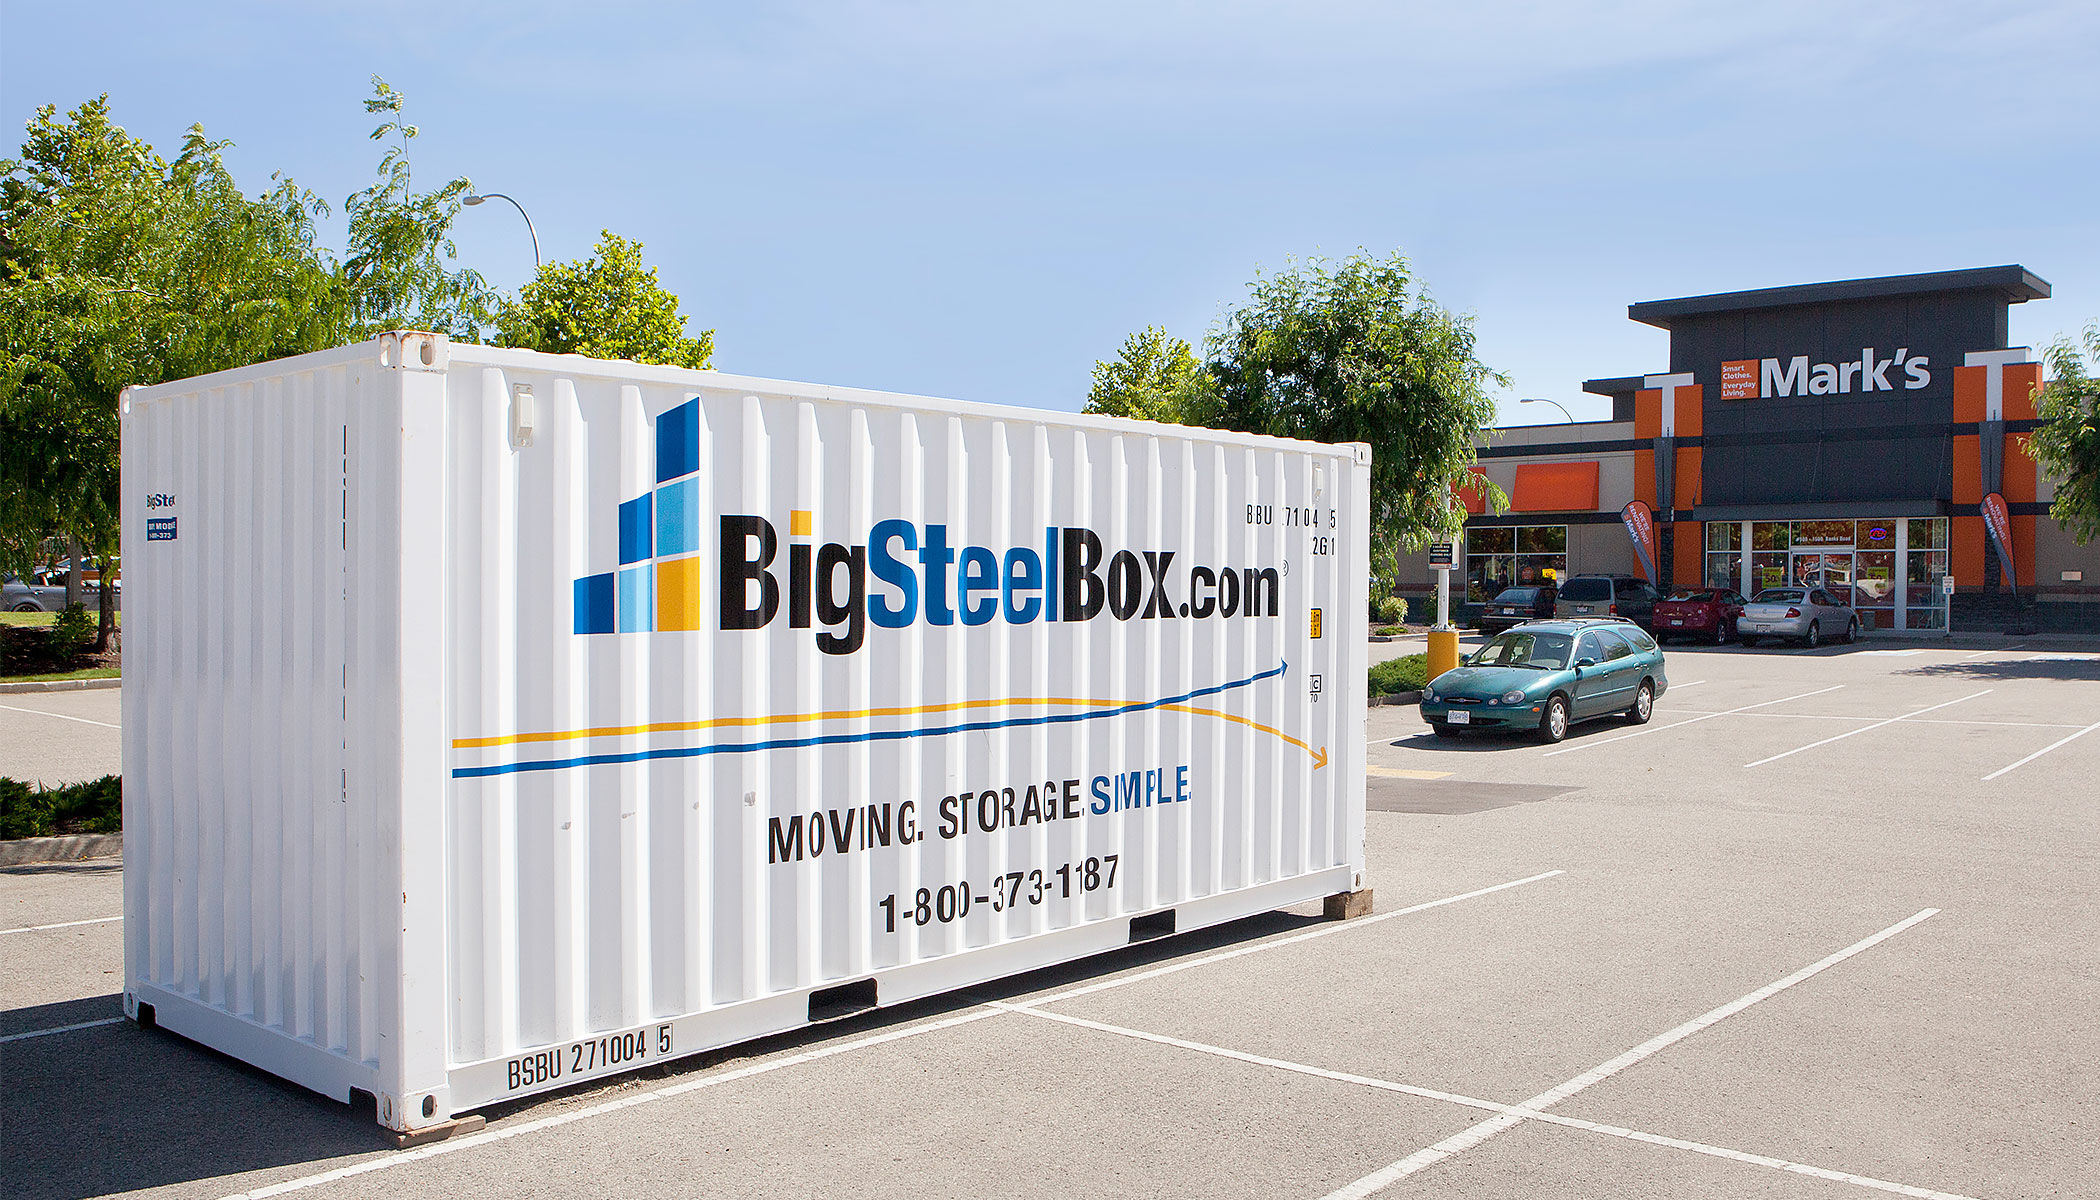 Portable storage for business renovations and seasonal storage - BigSteelBox